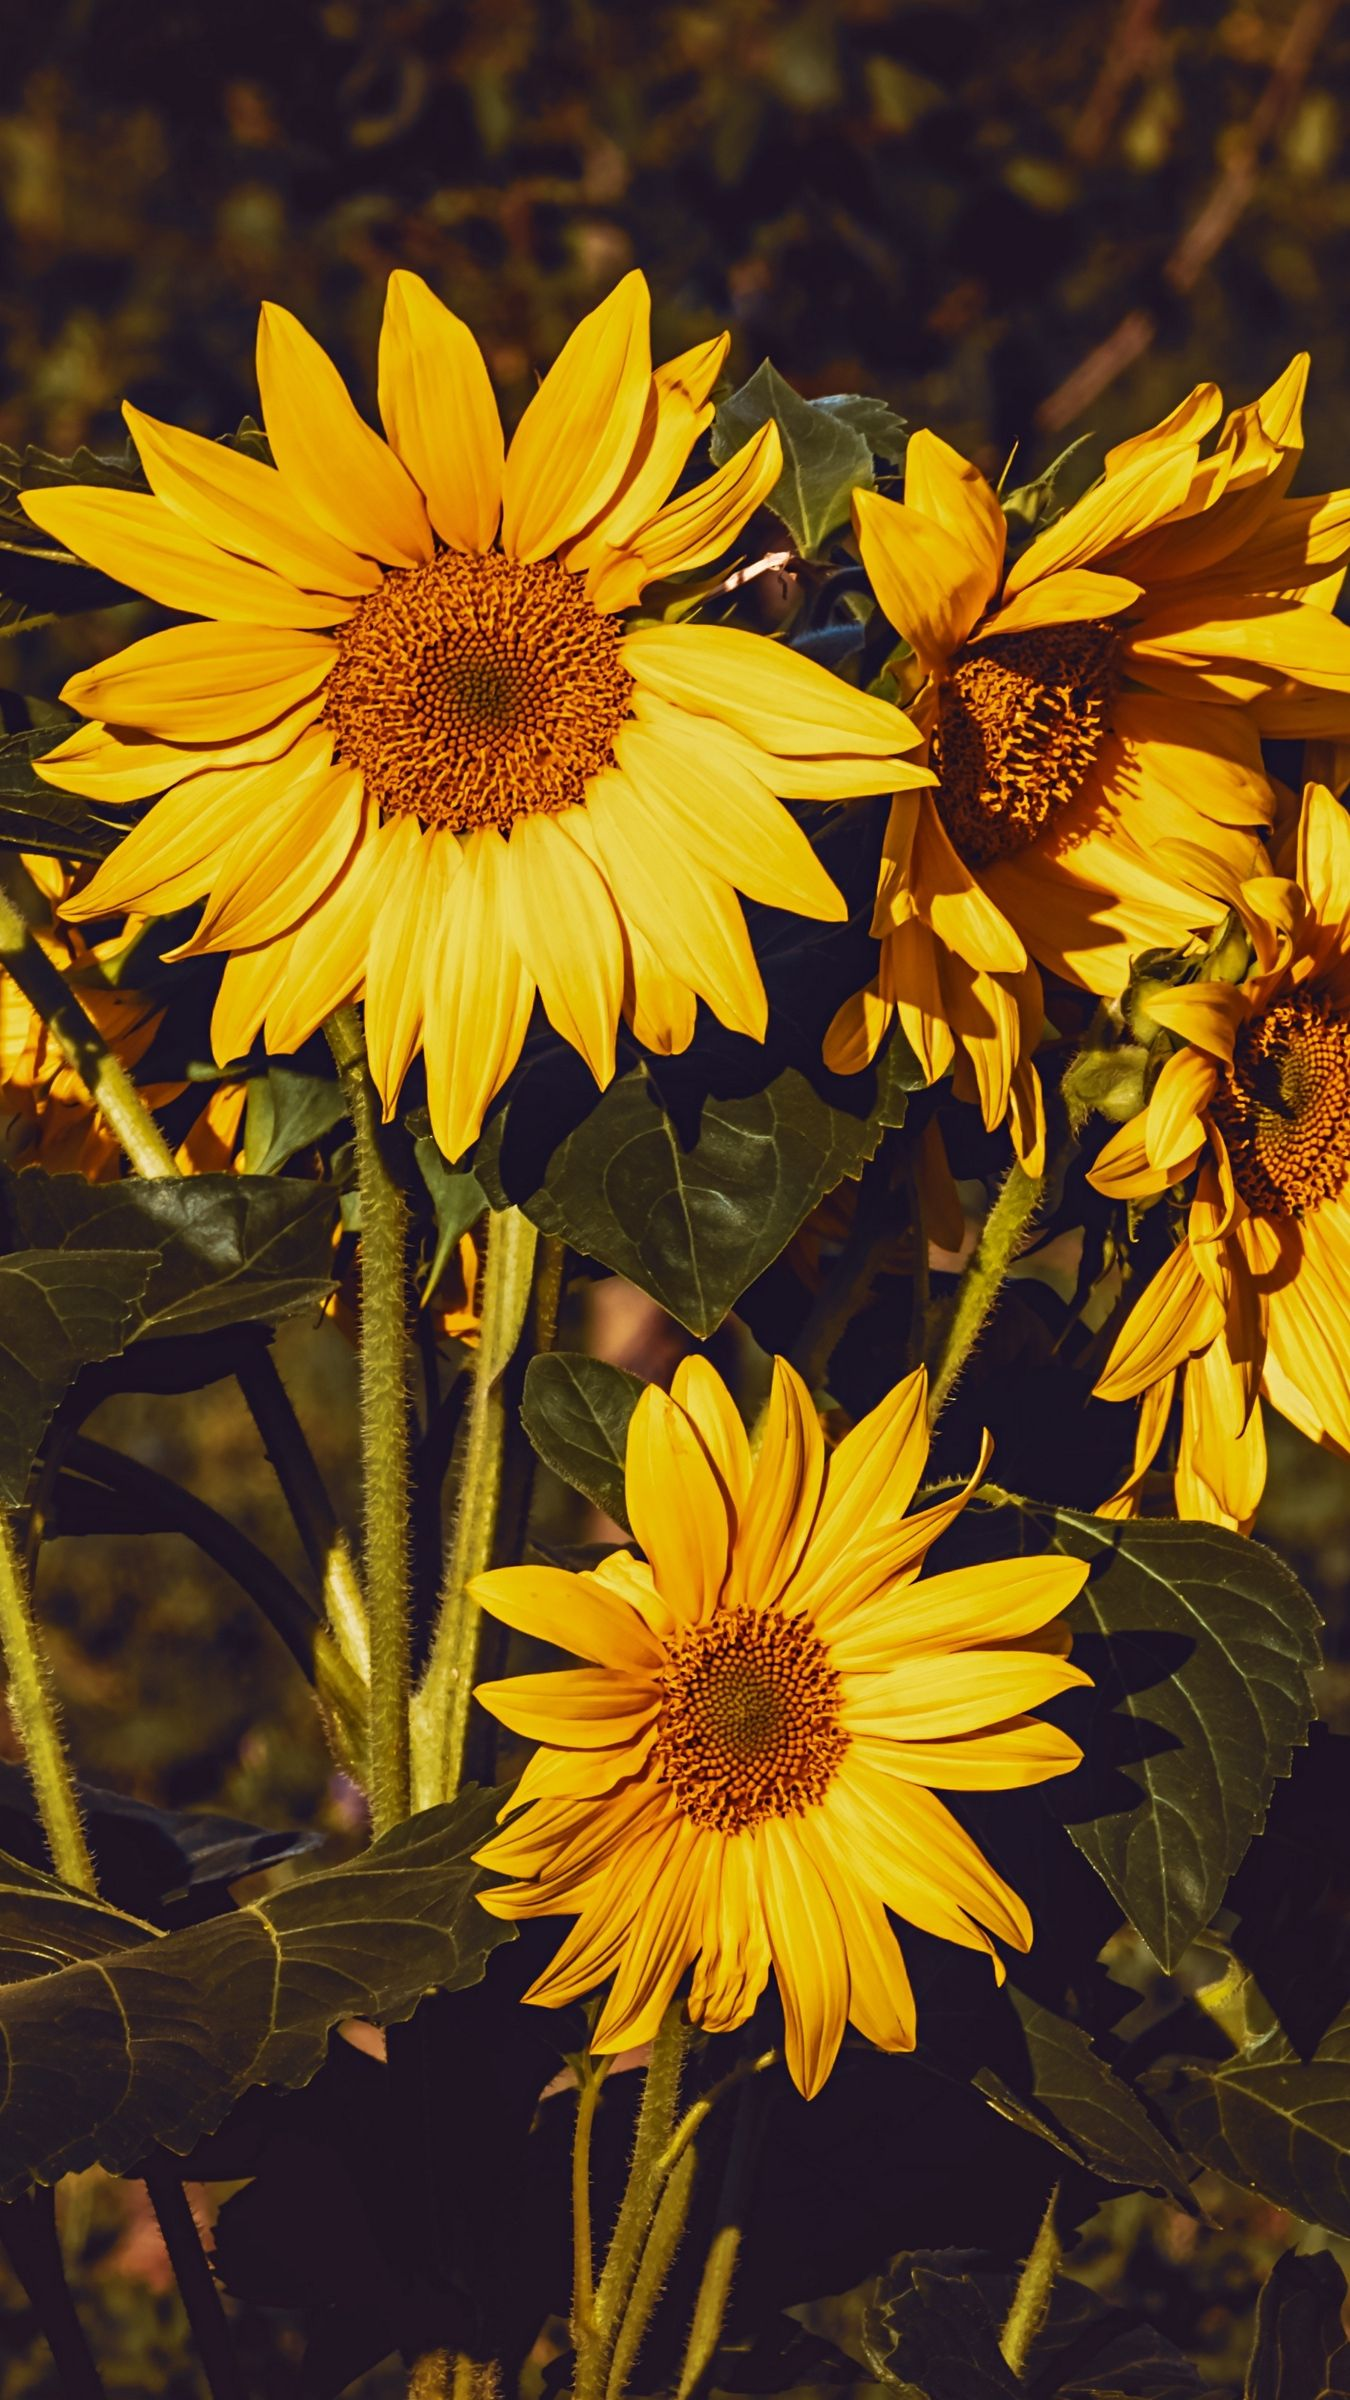 1350x2400 Download wallpaper 1350x2400 sunflower, flowers, summer ...